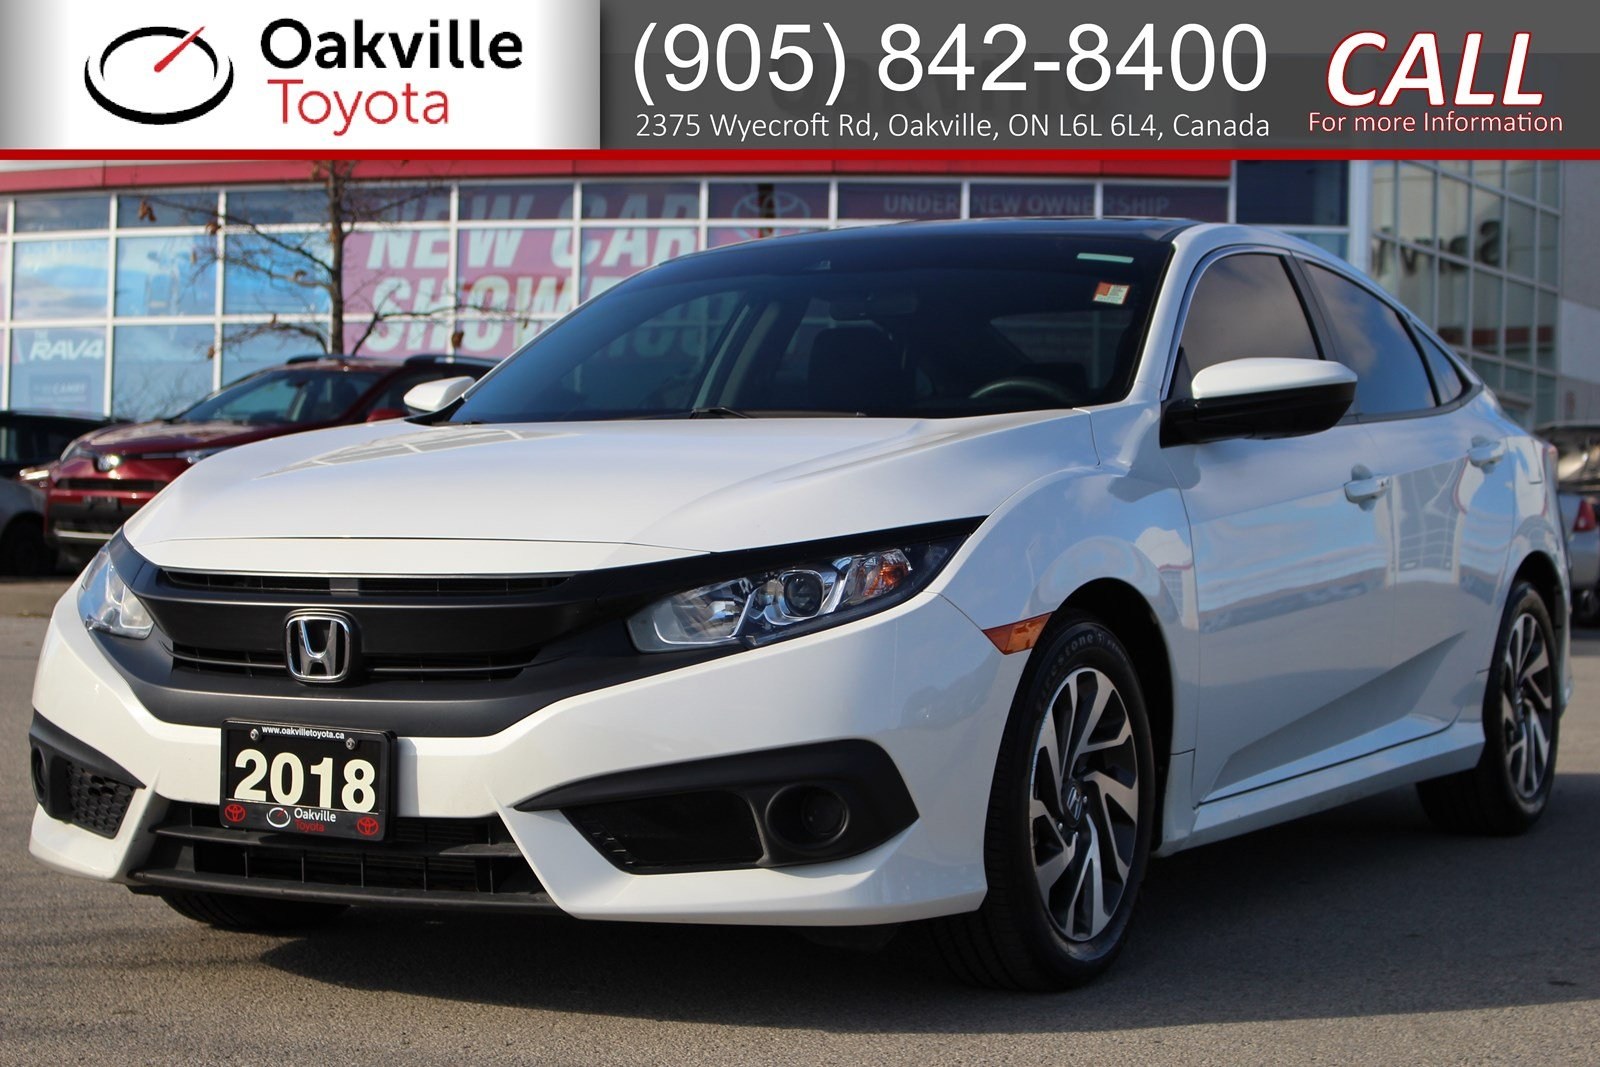 Pre-Owned 2018 Honda Civic Sedan EX with Single Owner and Clean Carfax